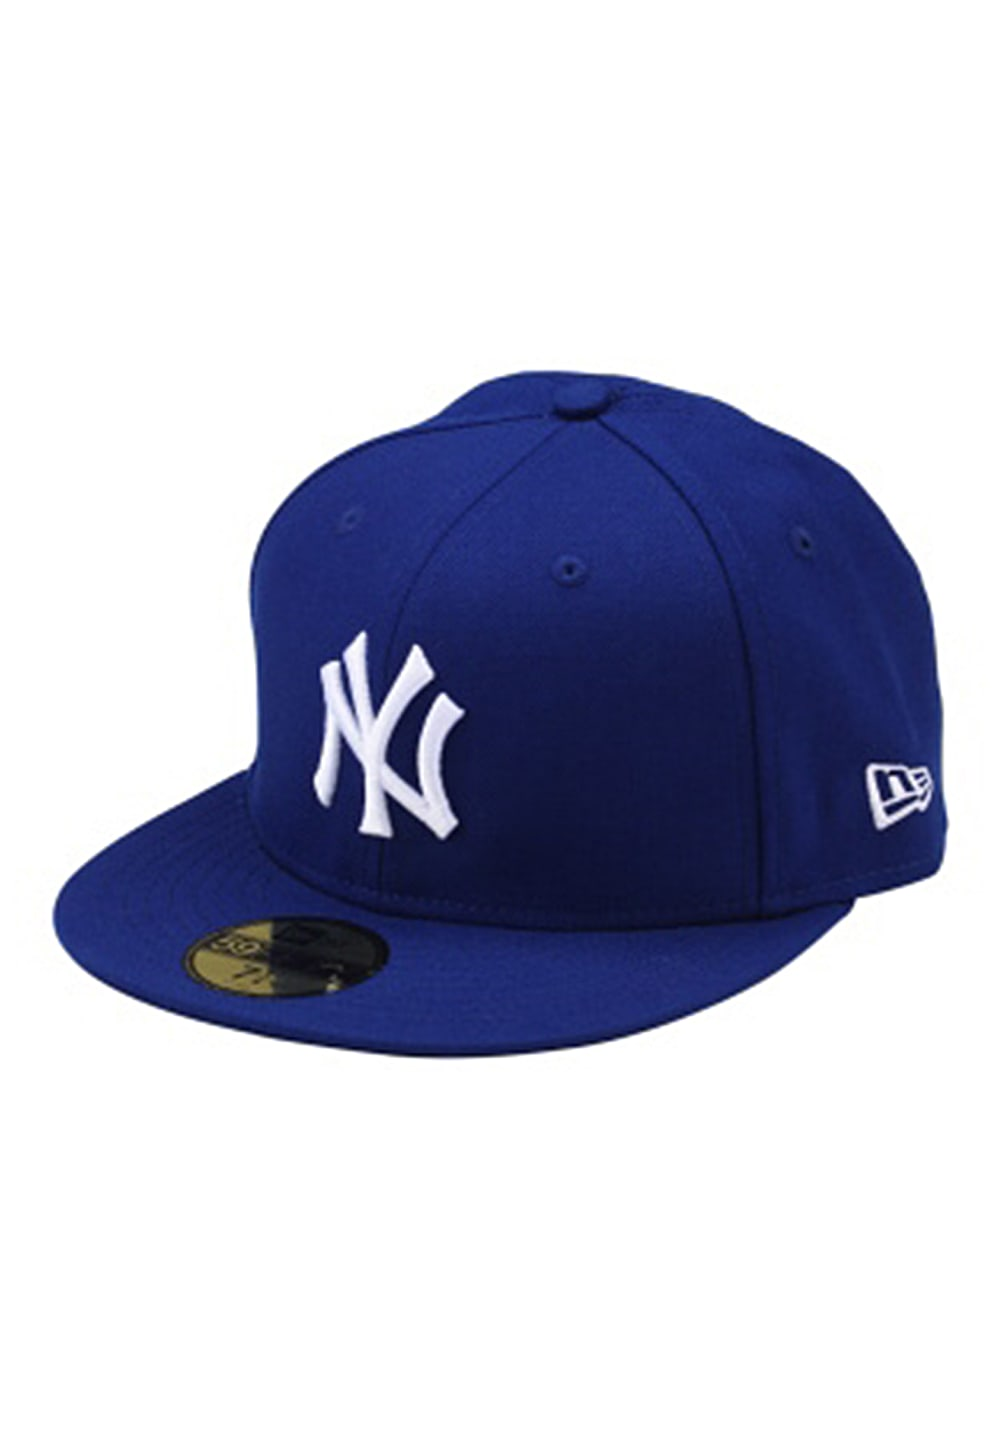 NEW Era 59Fifty New York Yankees Fitted Cap - Blau | Accessoires > Caps > Fitted Caps | new era